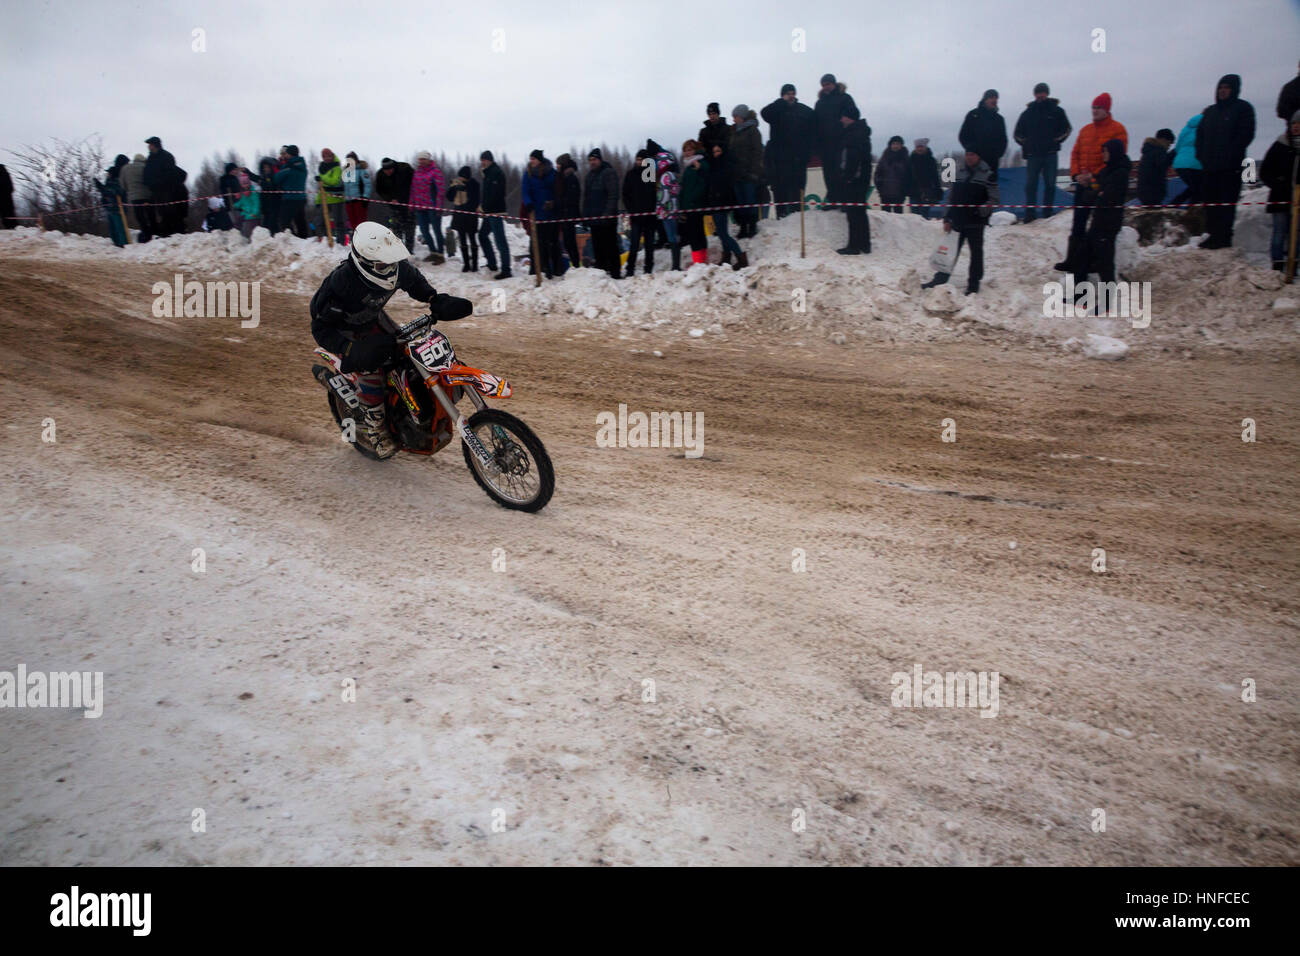 Sportsmen on sport motorcycles pass the track during the winter motocross competitions during the 'Winter Fun' - Stock Image